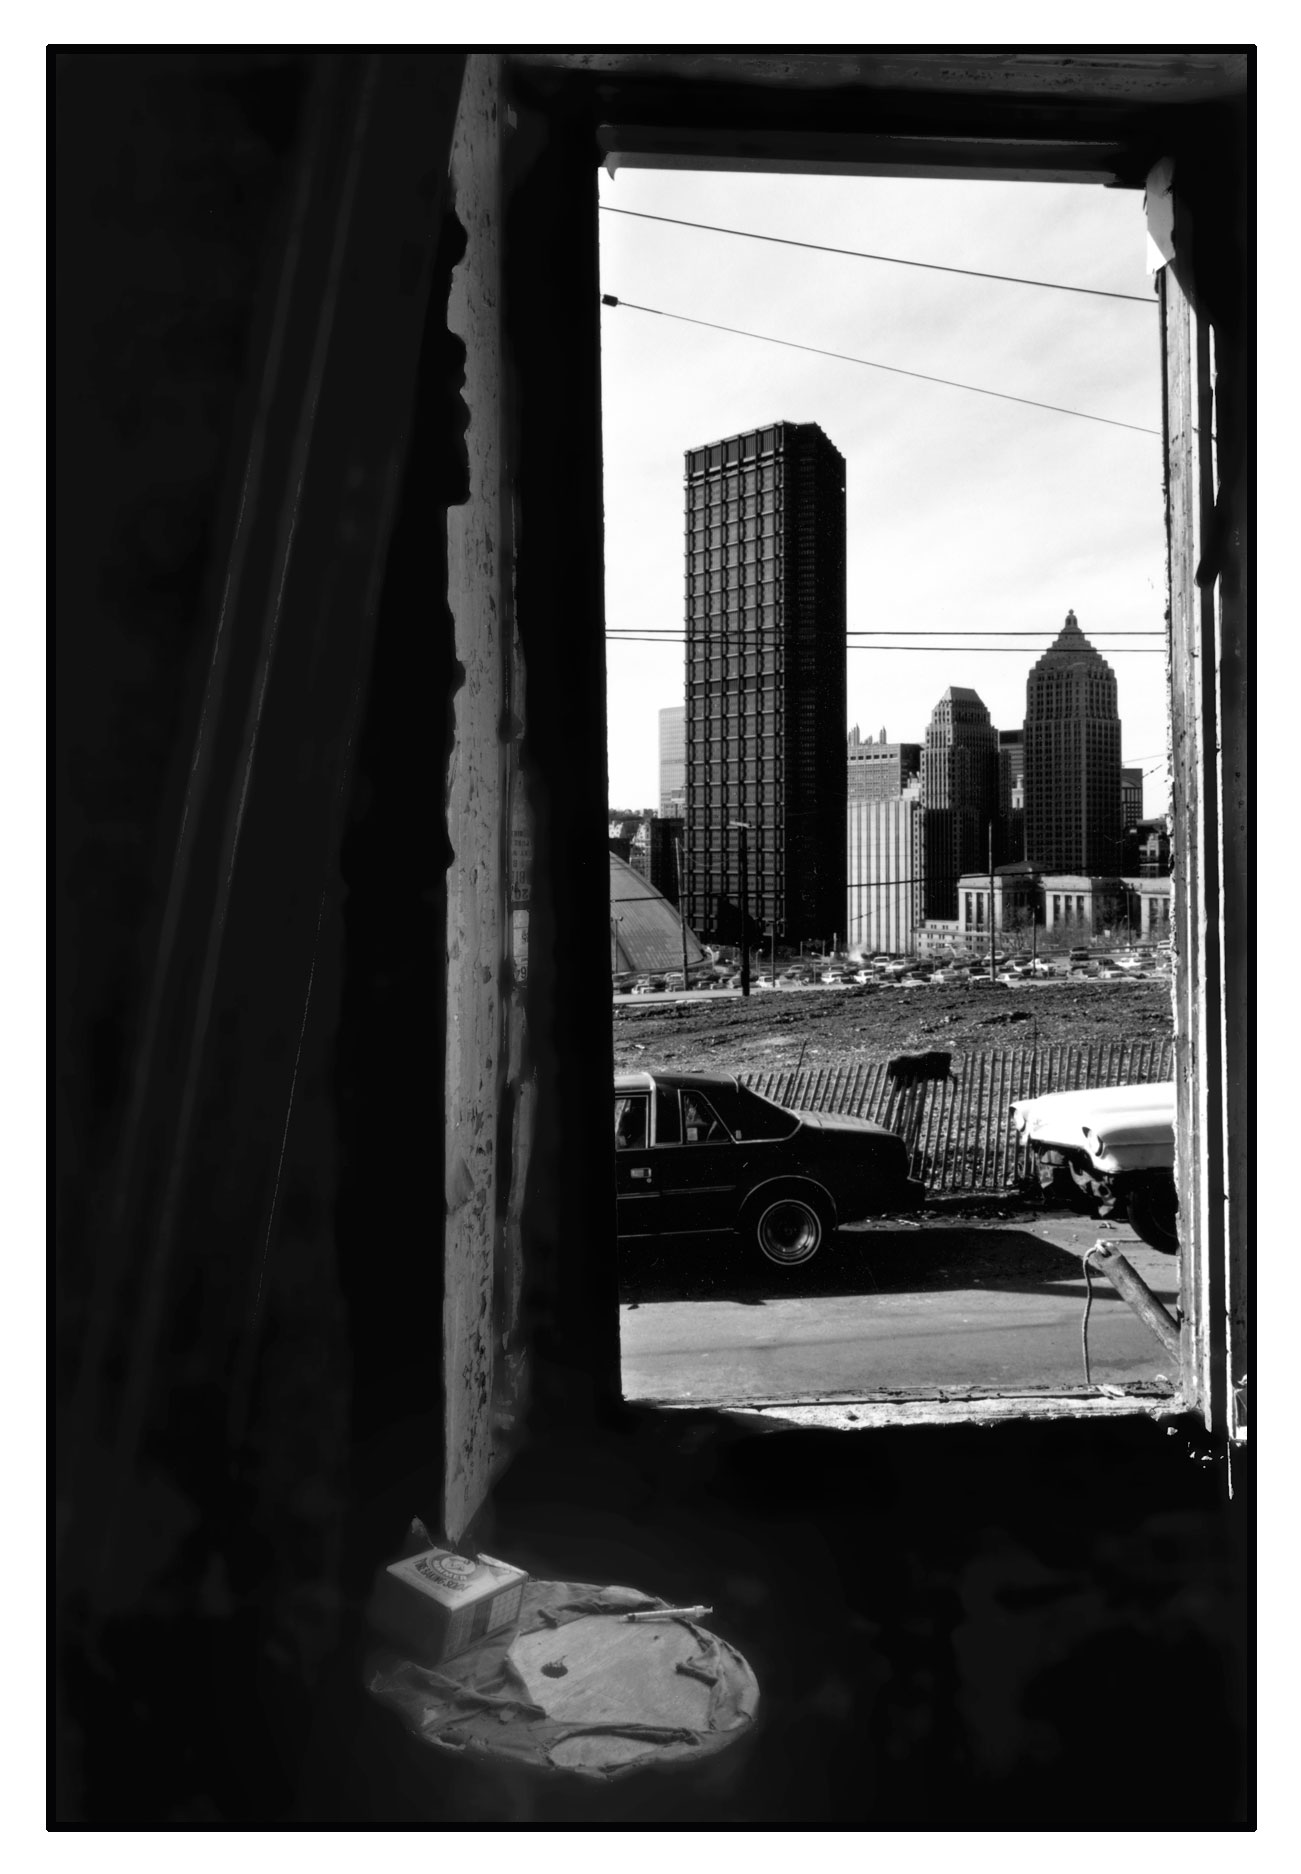 Photo taken from the house on the corner of the former Tannehill Street and Webster Avenue. Crawford Street is in the distance at the base of the dark pole, and the Civic Arena is to the left of it. Vacant buildings such as this were often used as shooting galleries. Photo by Carlos Peterson, 1990.